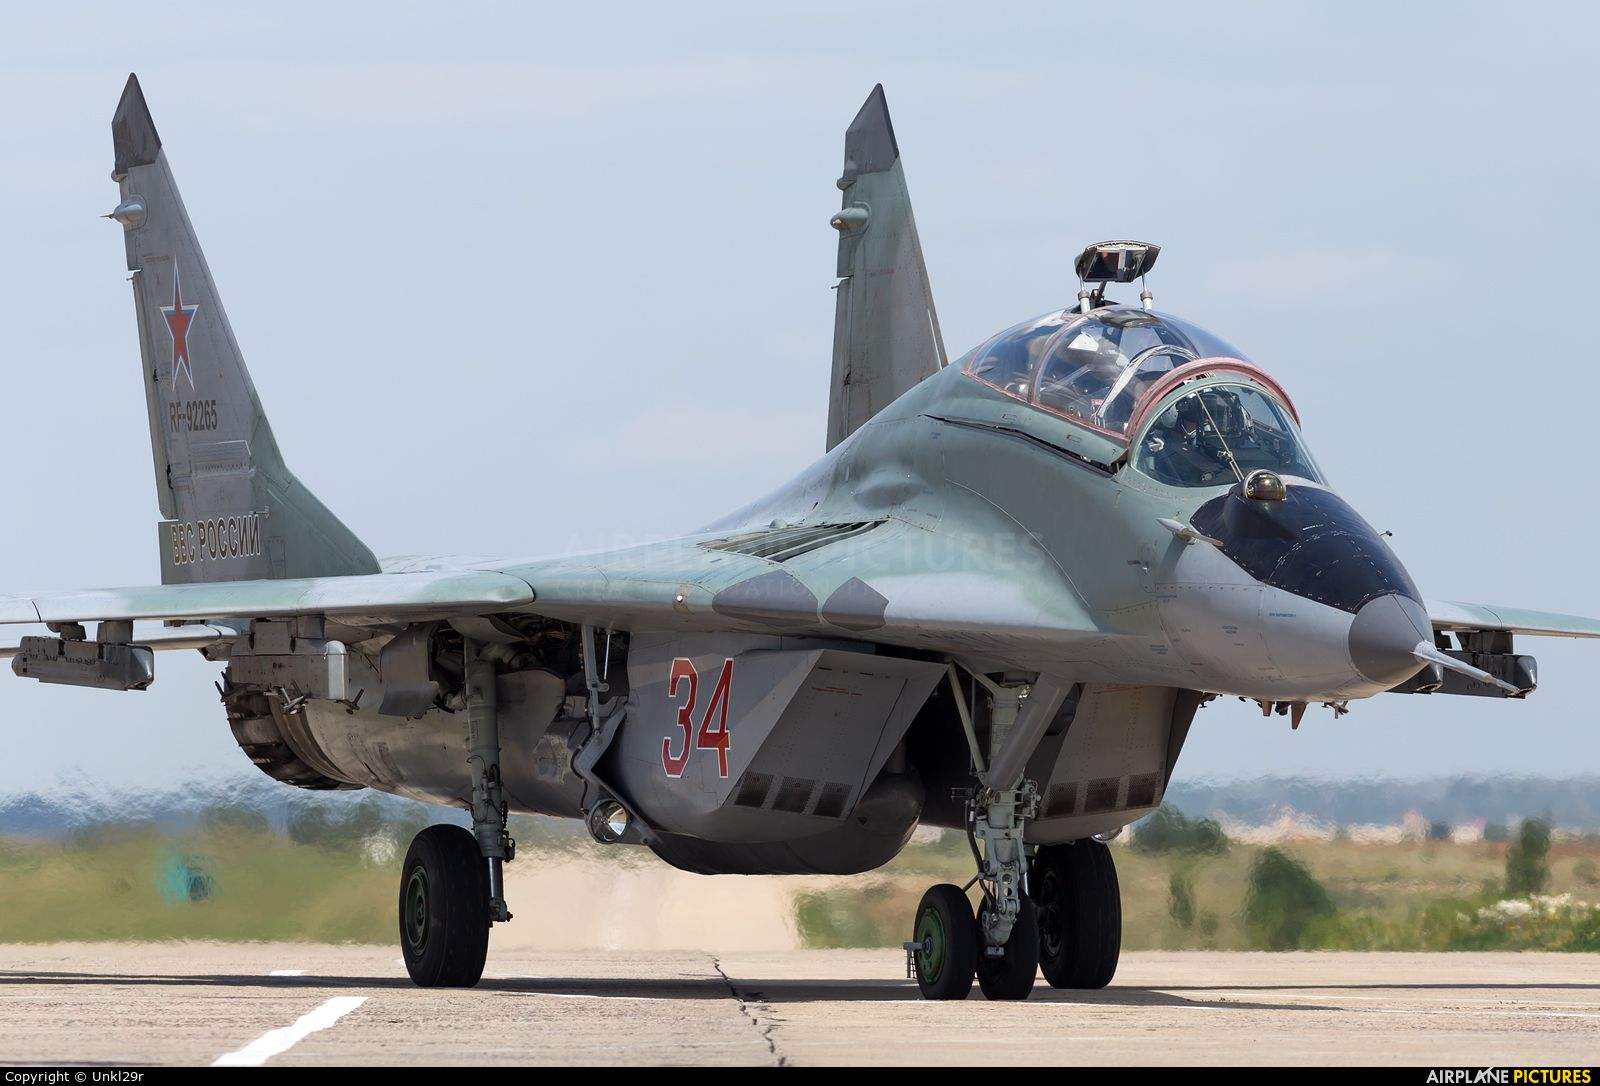 Russia Air Force 34 aircraft at Undisclosed Location